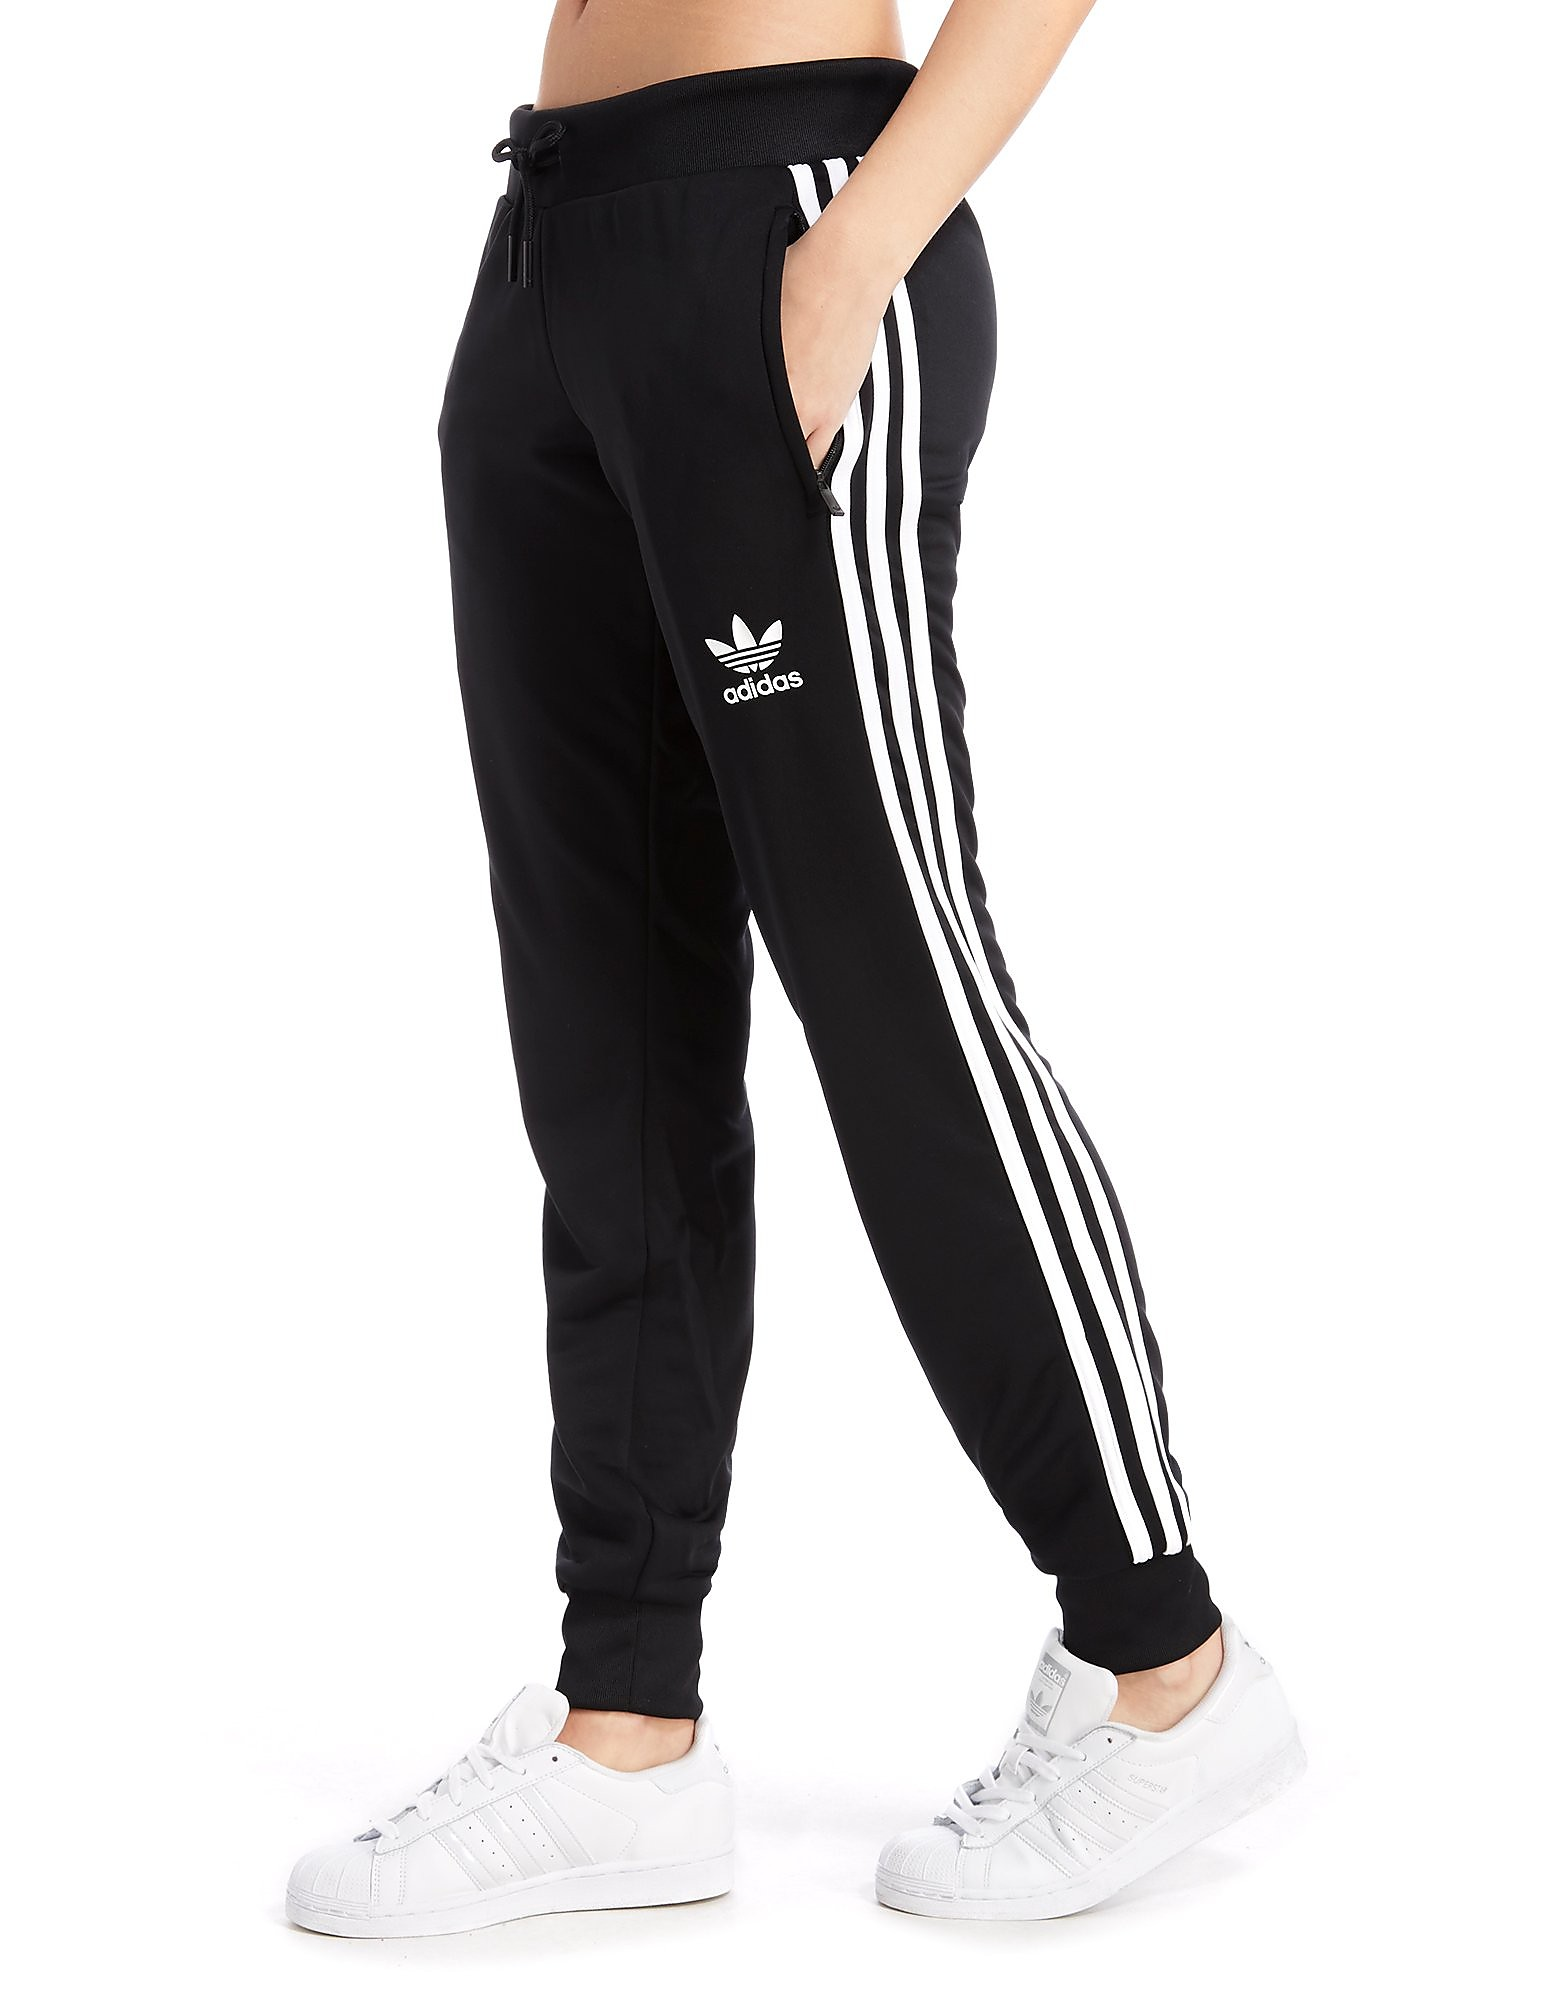 2a3d2915c56 Adidas Originals adidas Originals Poly 3-Stripes Joggingbroek - alleen bij  JD - Black/